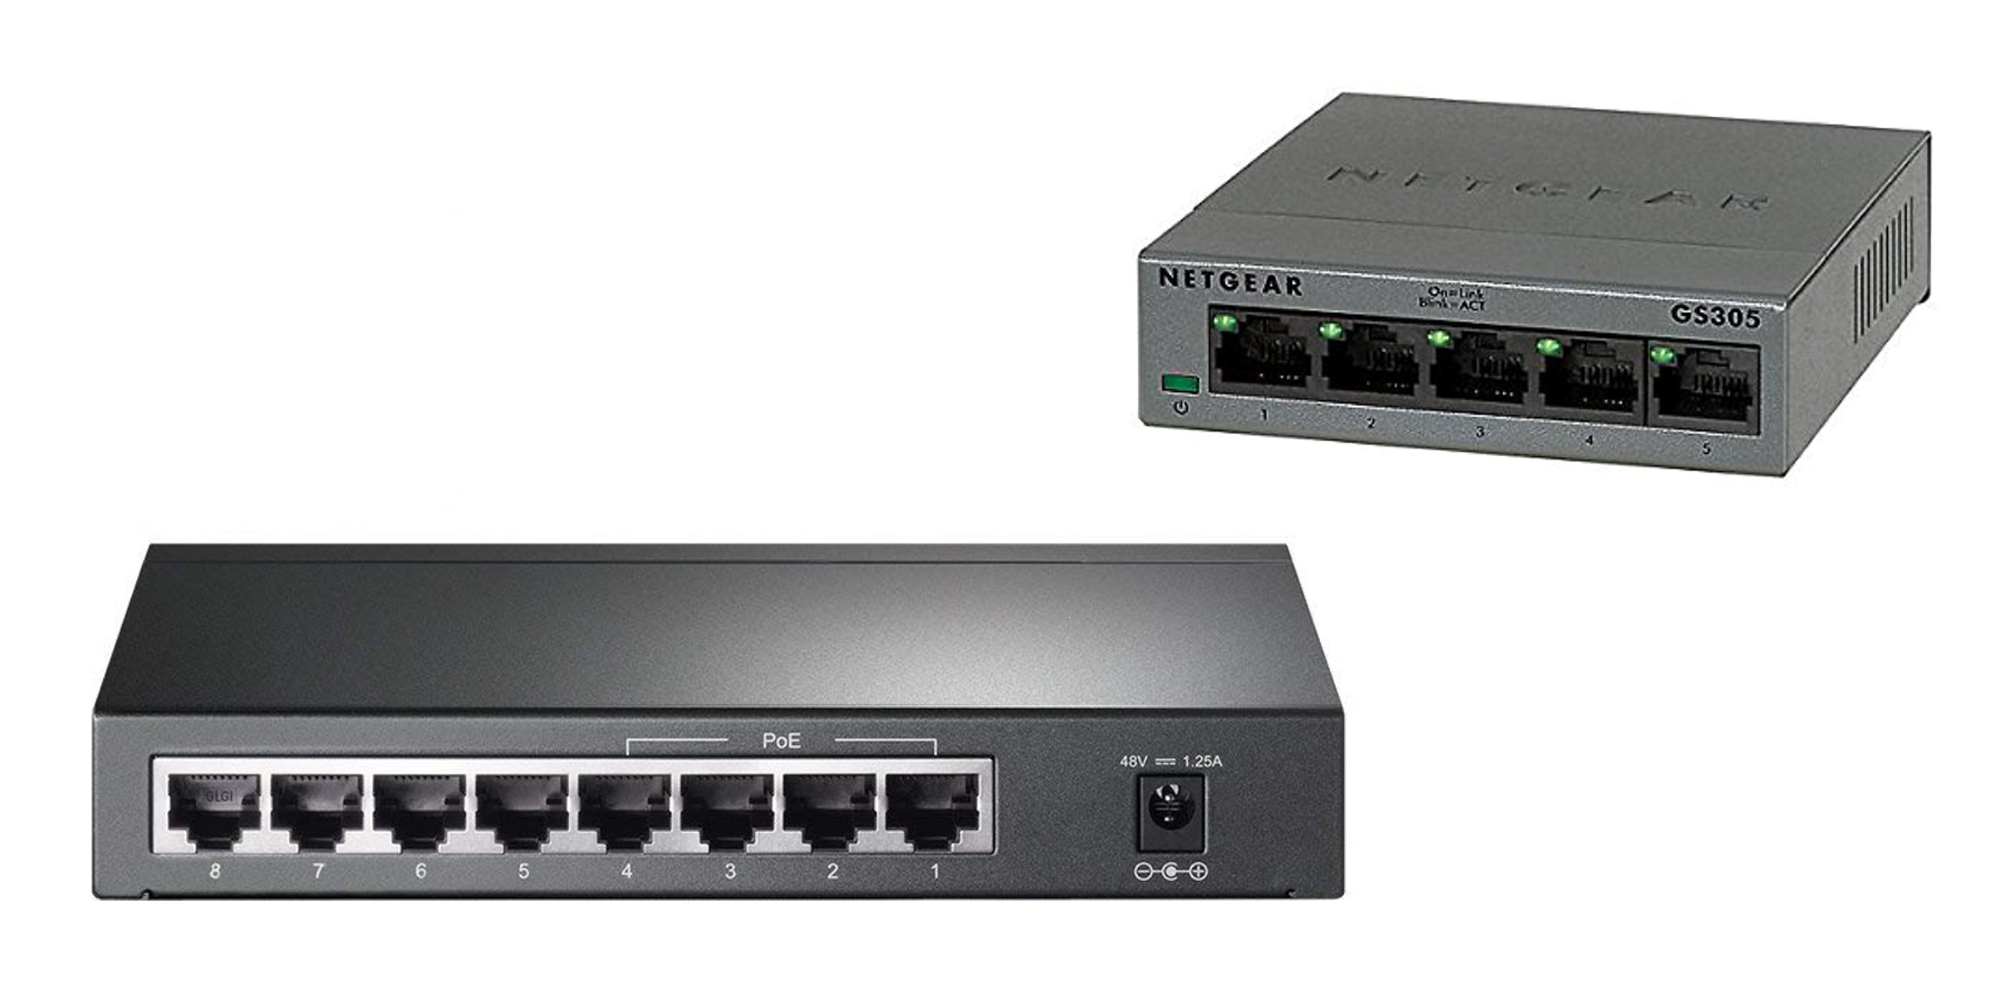 Expand your network w/ TP-Link's 8-Port Gigabit POE Switch at $50 (Reg. $60), more from $15